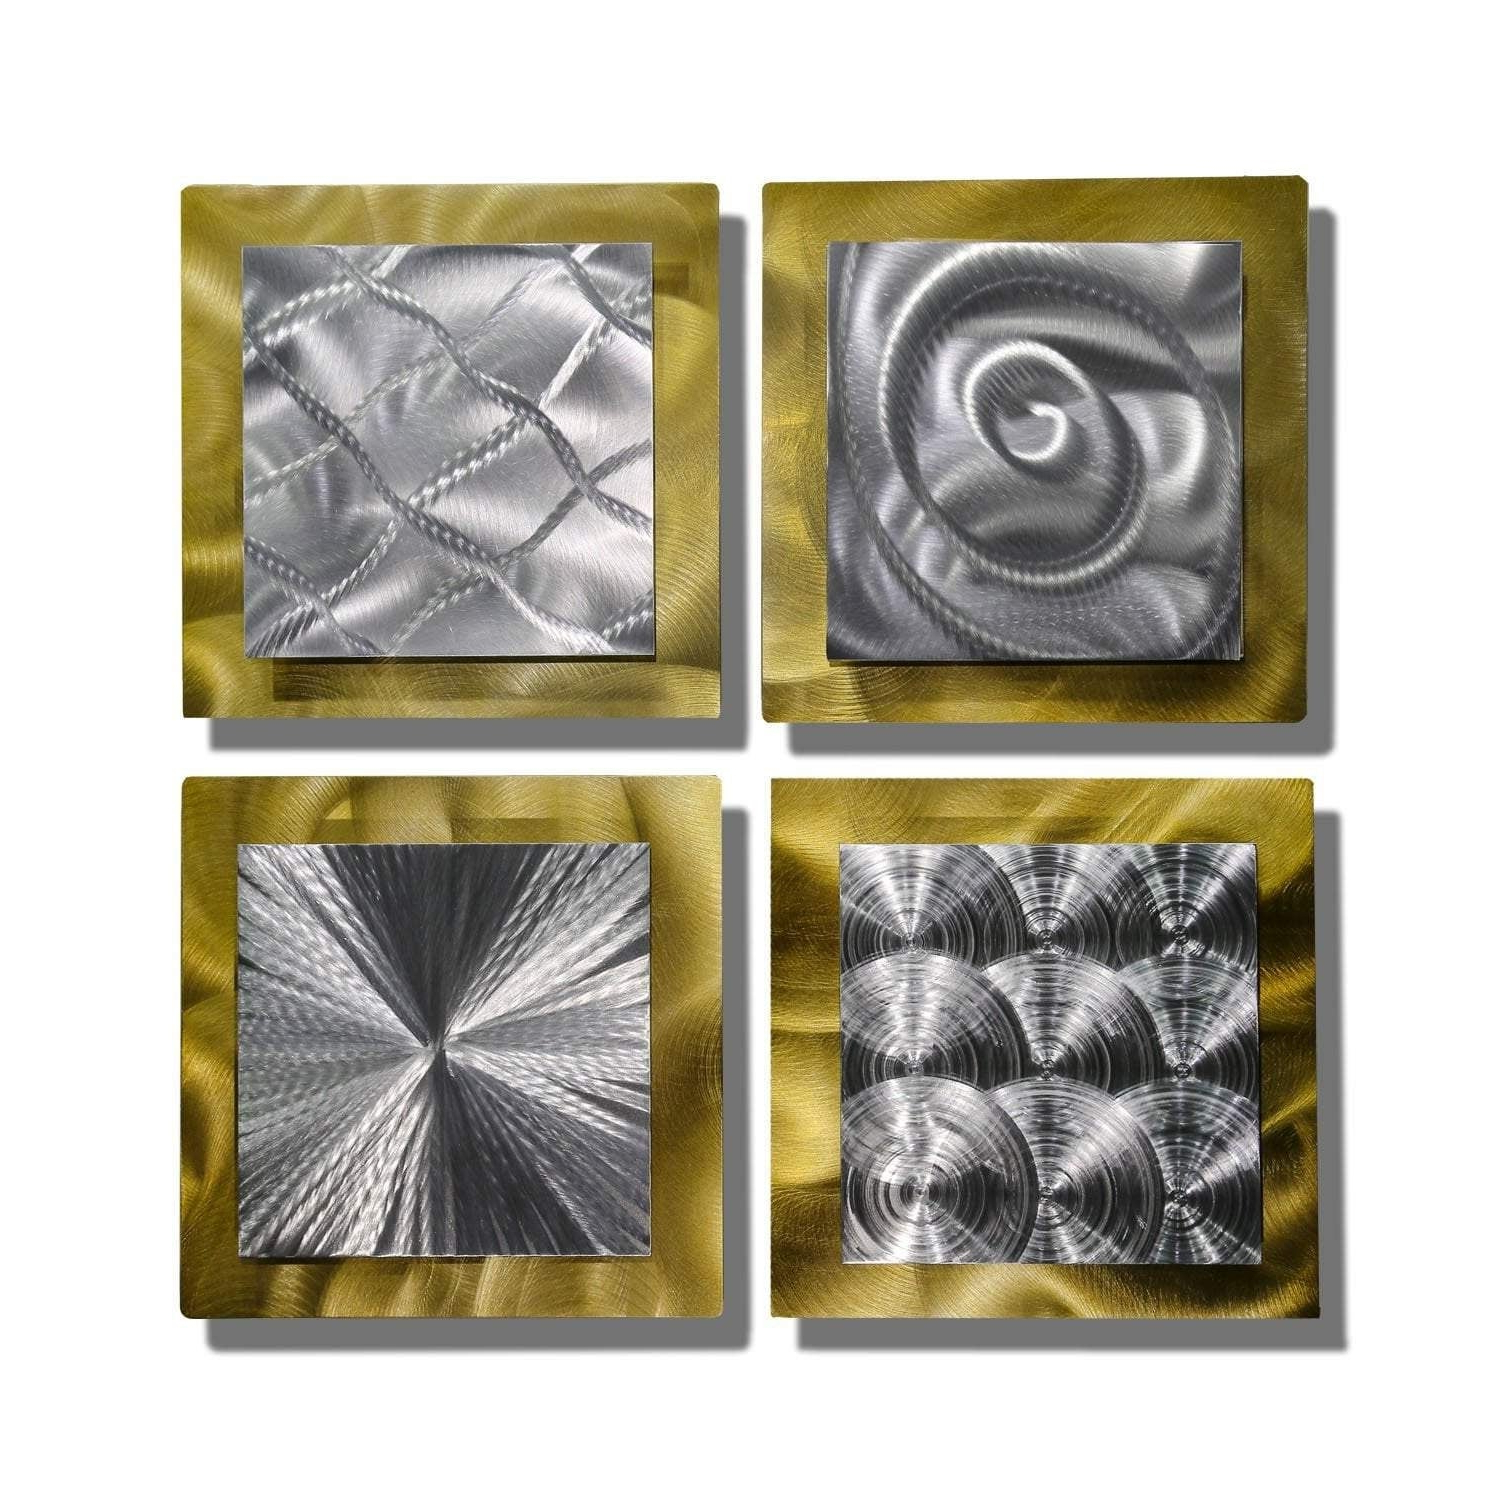 Find Great Art Gallery Deals Shopping At Overstock Throughout Well Known 4 Piece Metal Wall Decor Sets (View 6 of 20)